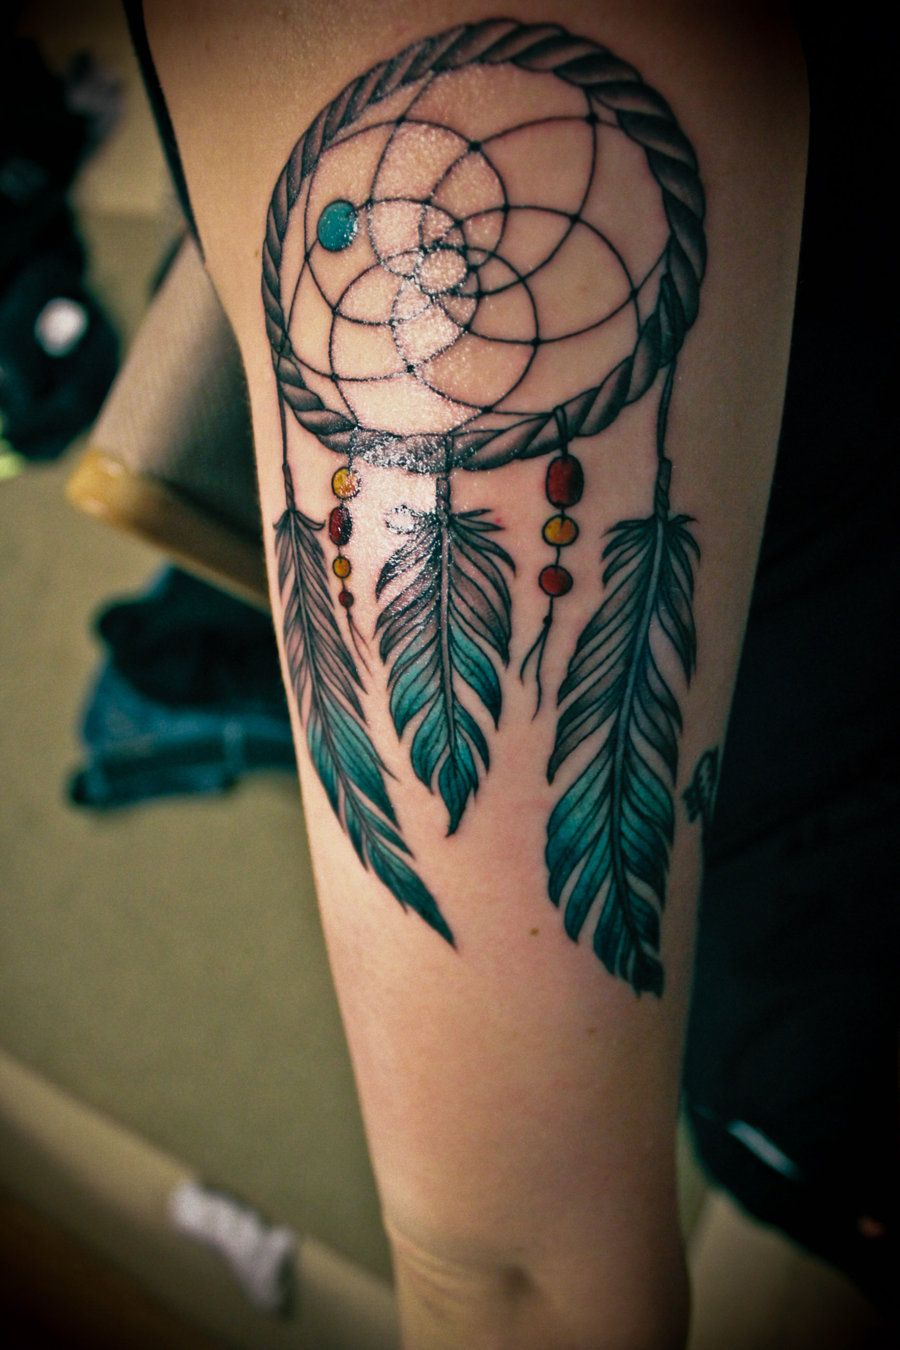 Dream Catcher Tattoo On Arm Unique 35 Awesome Dreamcatcher Tattoos And Meanings  Pinterest  Dream Review